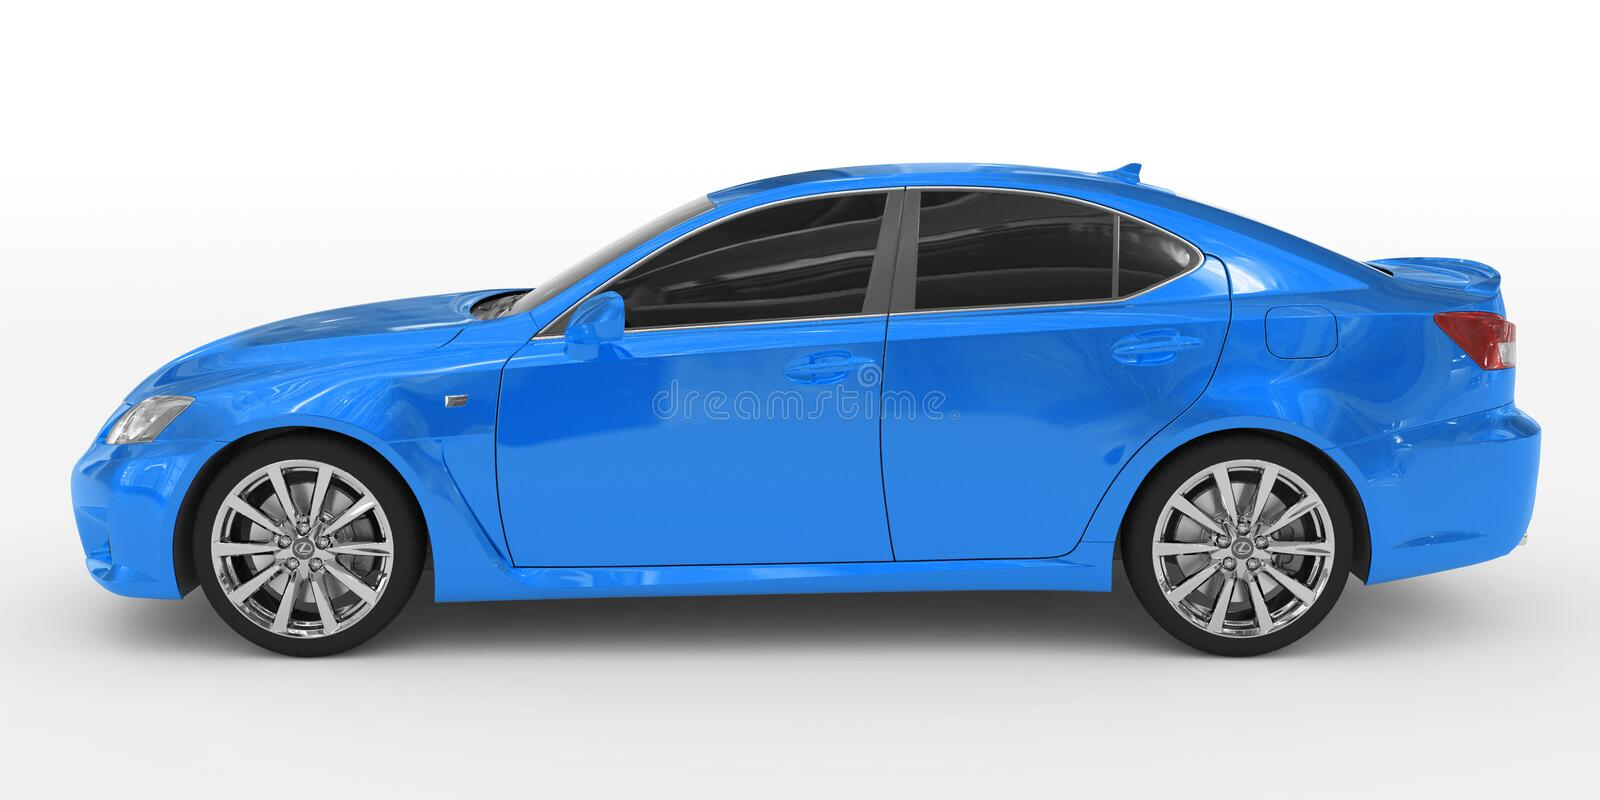 Car isolated on white - blue paint, tinted glass - left side vie royalty free stock photo